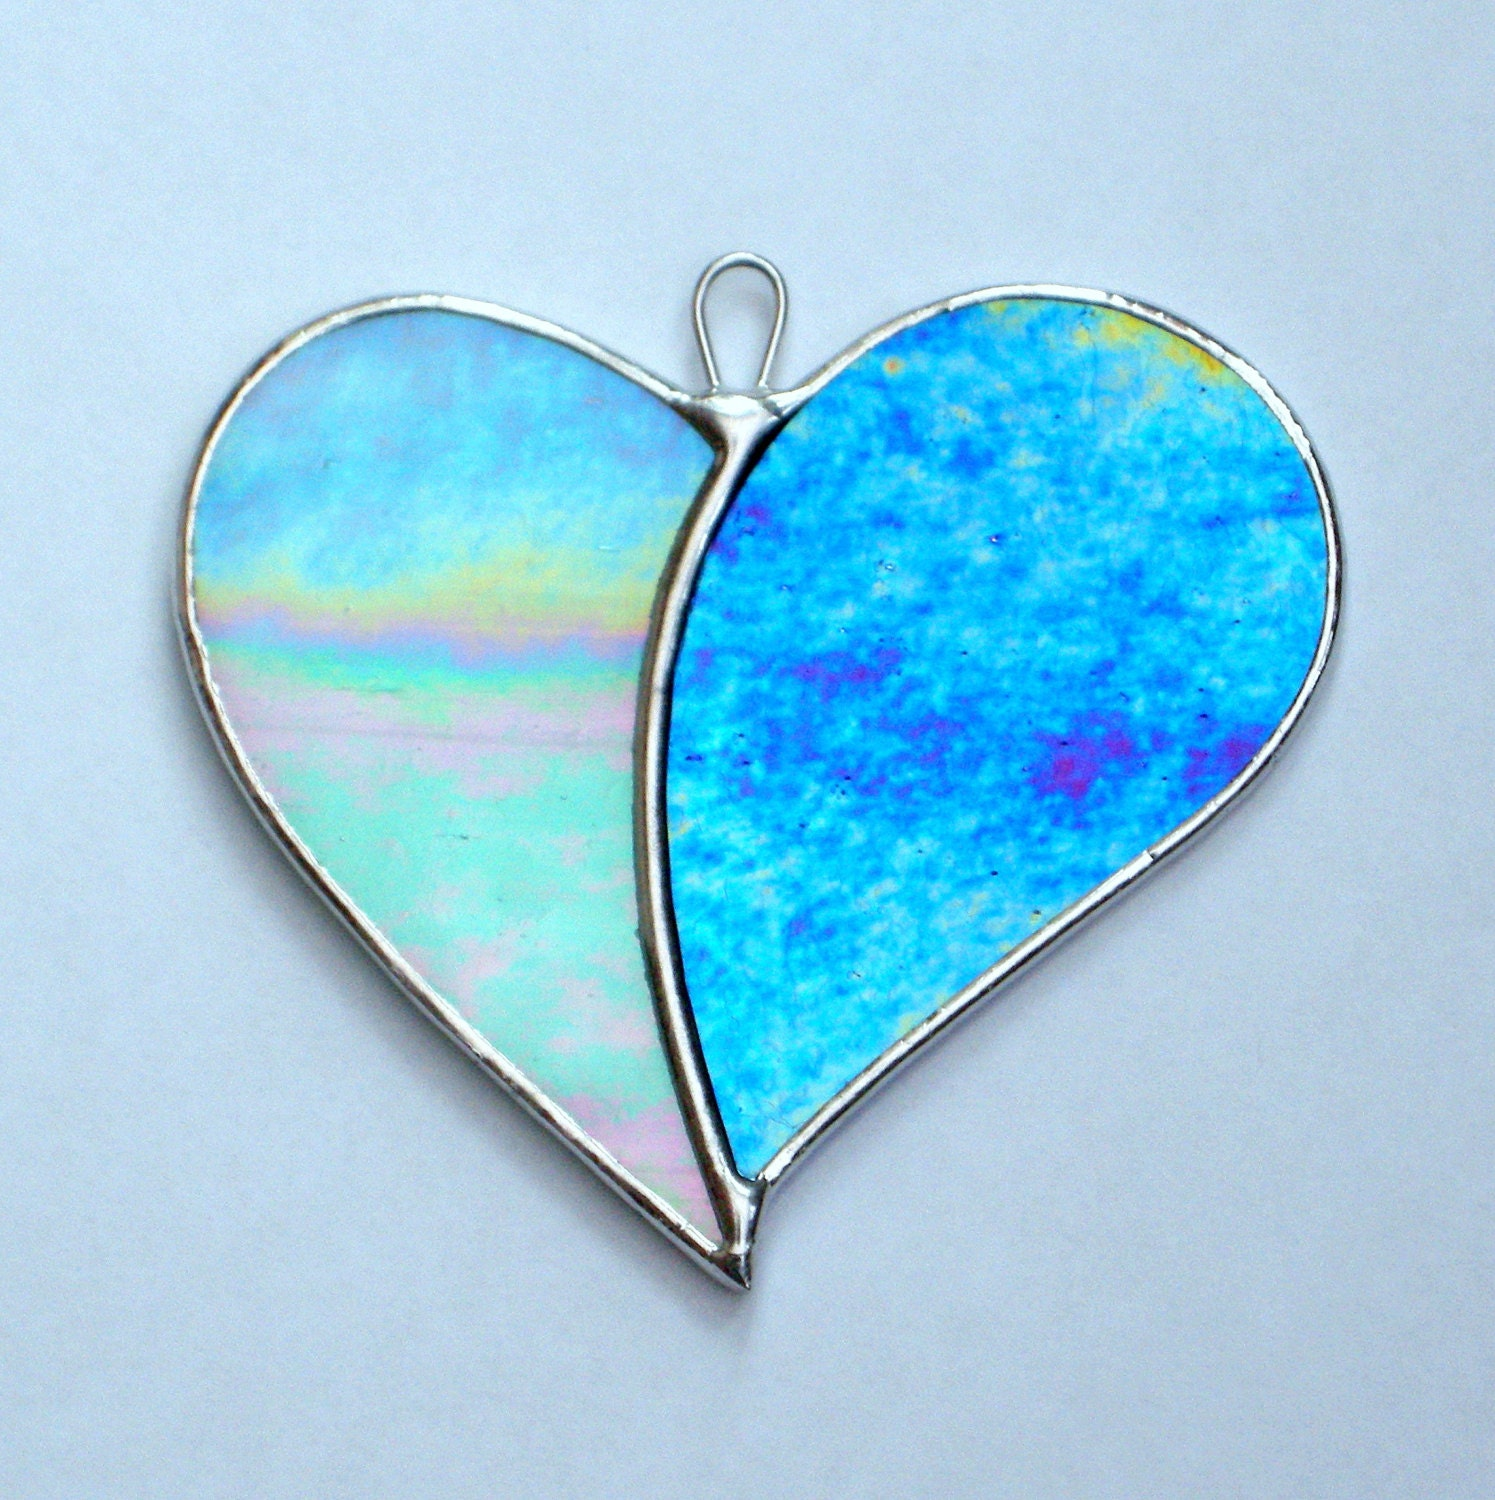 Stained Glass Ornament Love Heart When Two Hearts